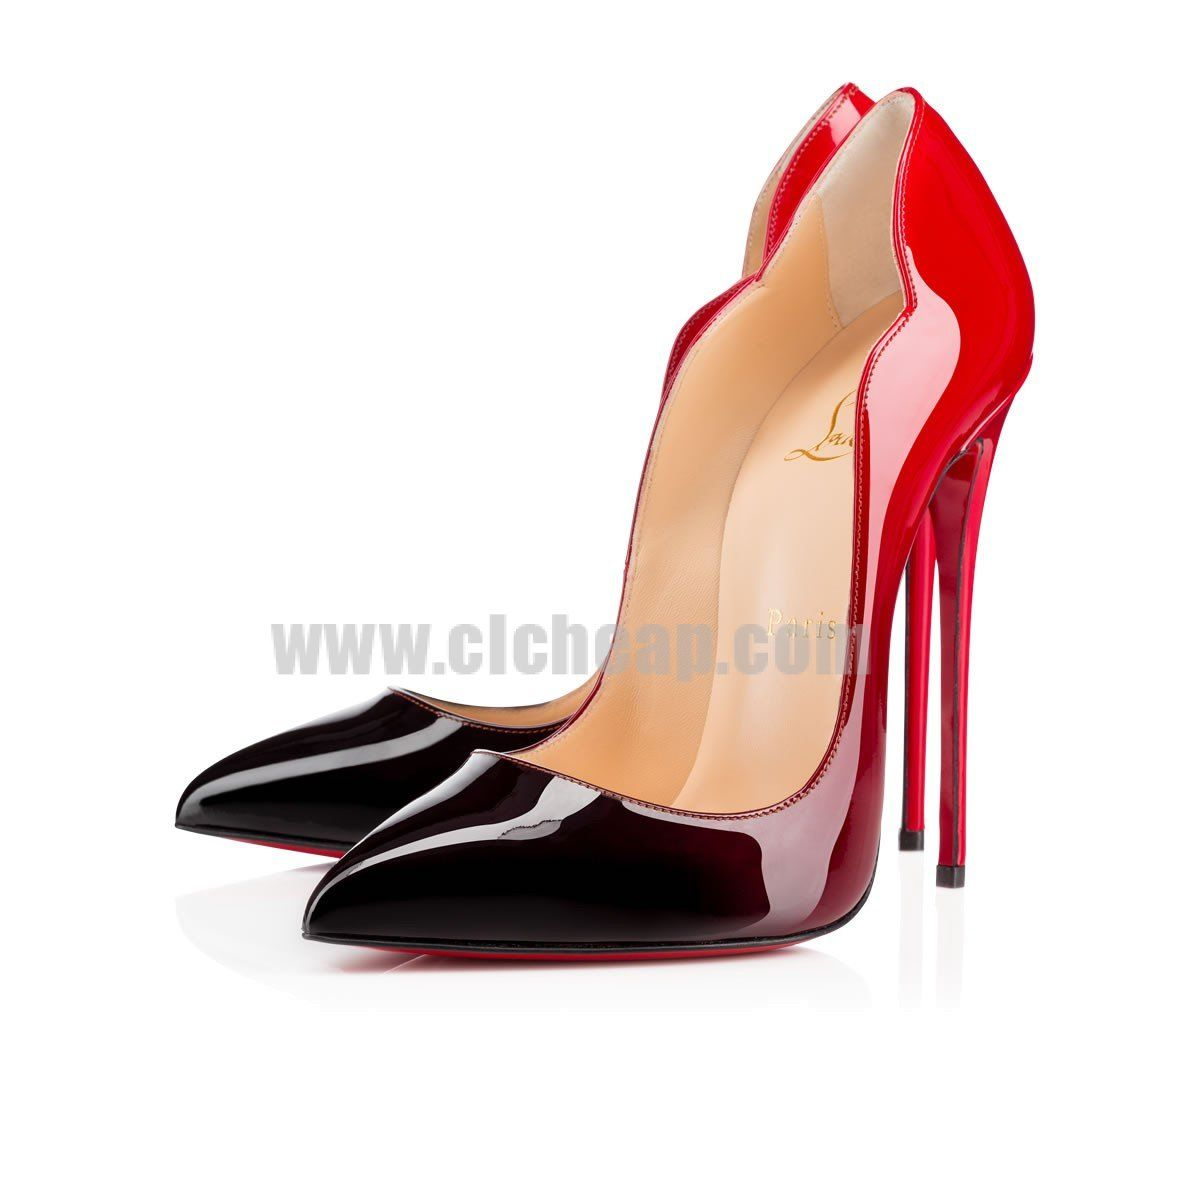 bd4ec56180a Christian Louboutin Hot Chick 130mm Black Red Patent Pumps | Stuff ...